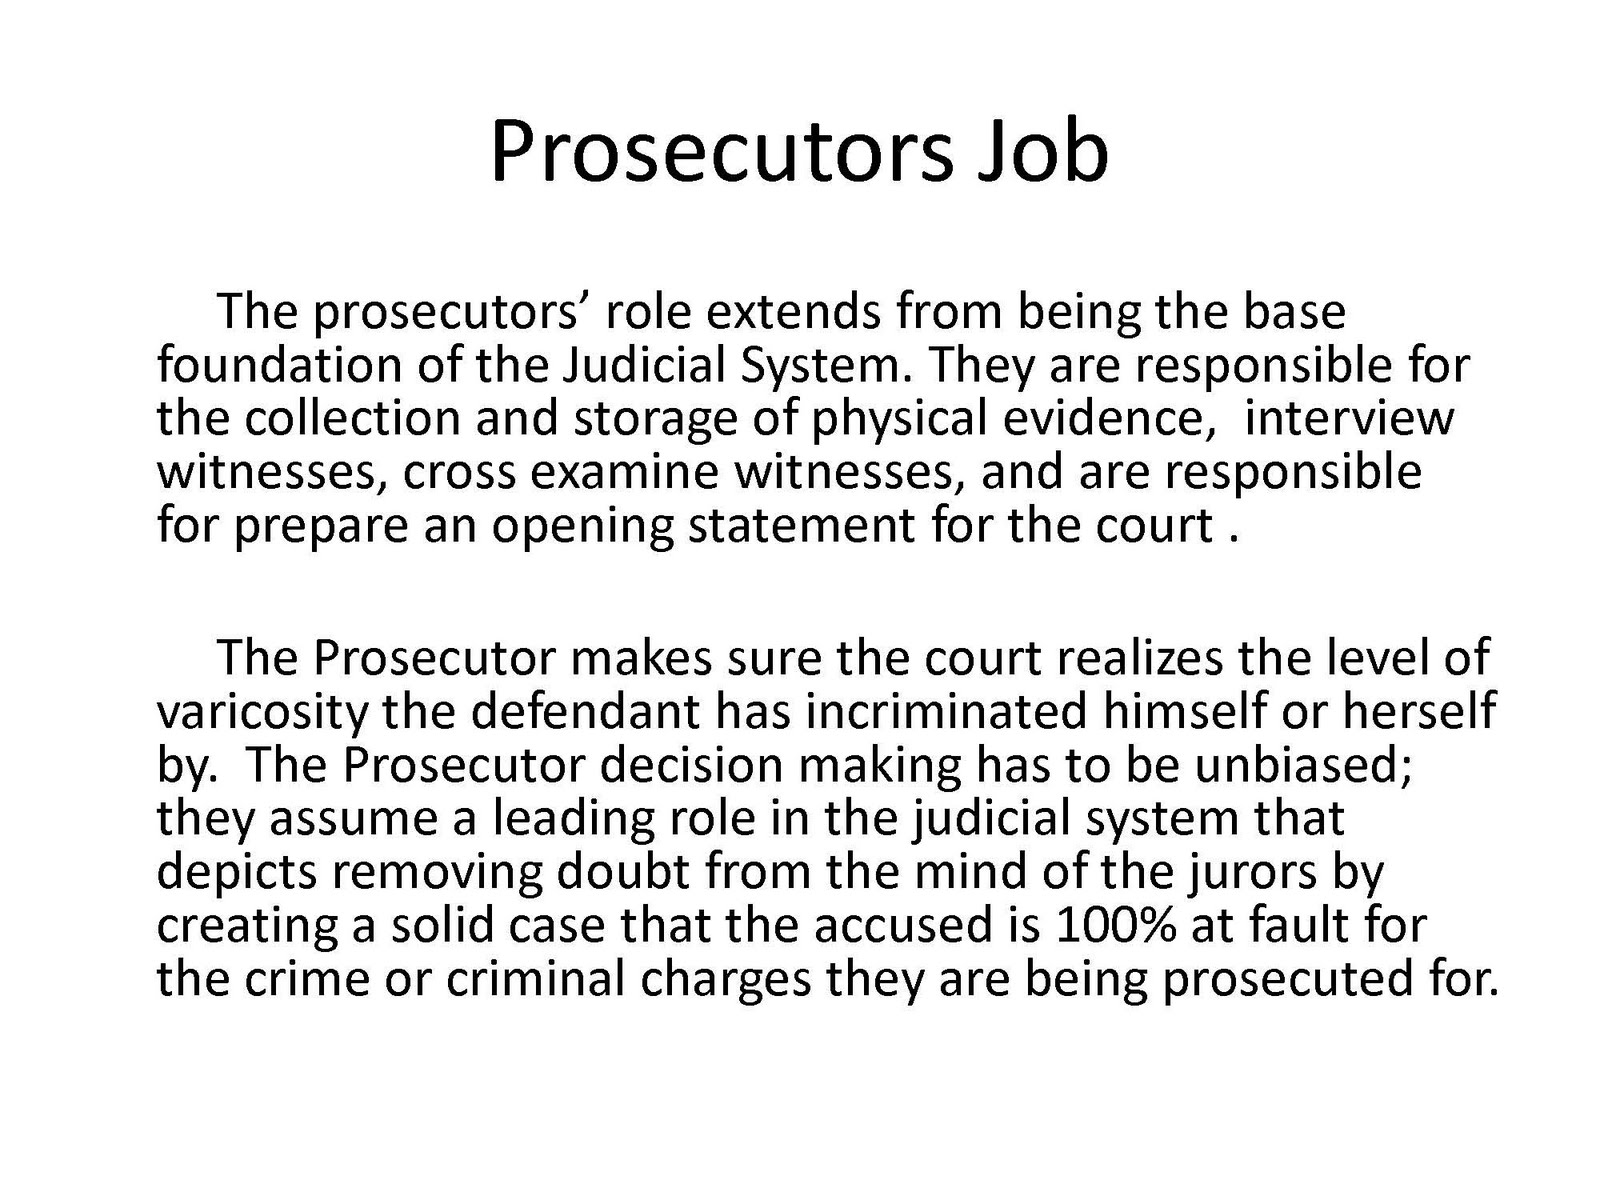 discussions on whether to prosecute or not to prosecute health practitioners Who makes the decision to prosecute someone for a crime in the us how do prosecutors resolve disagreements over whether to prosecute someone for a crime.